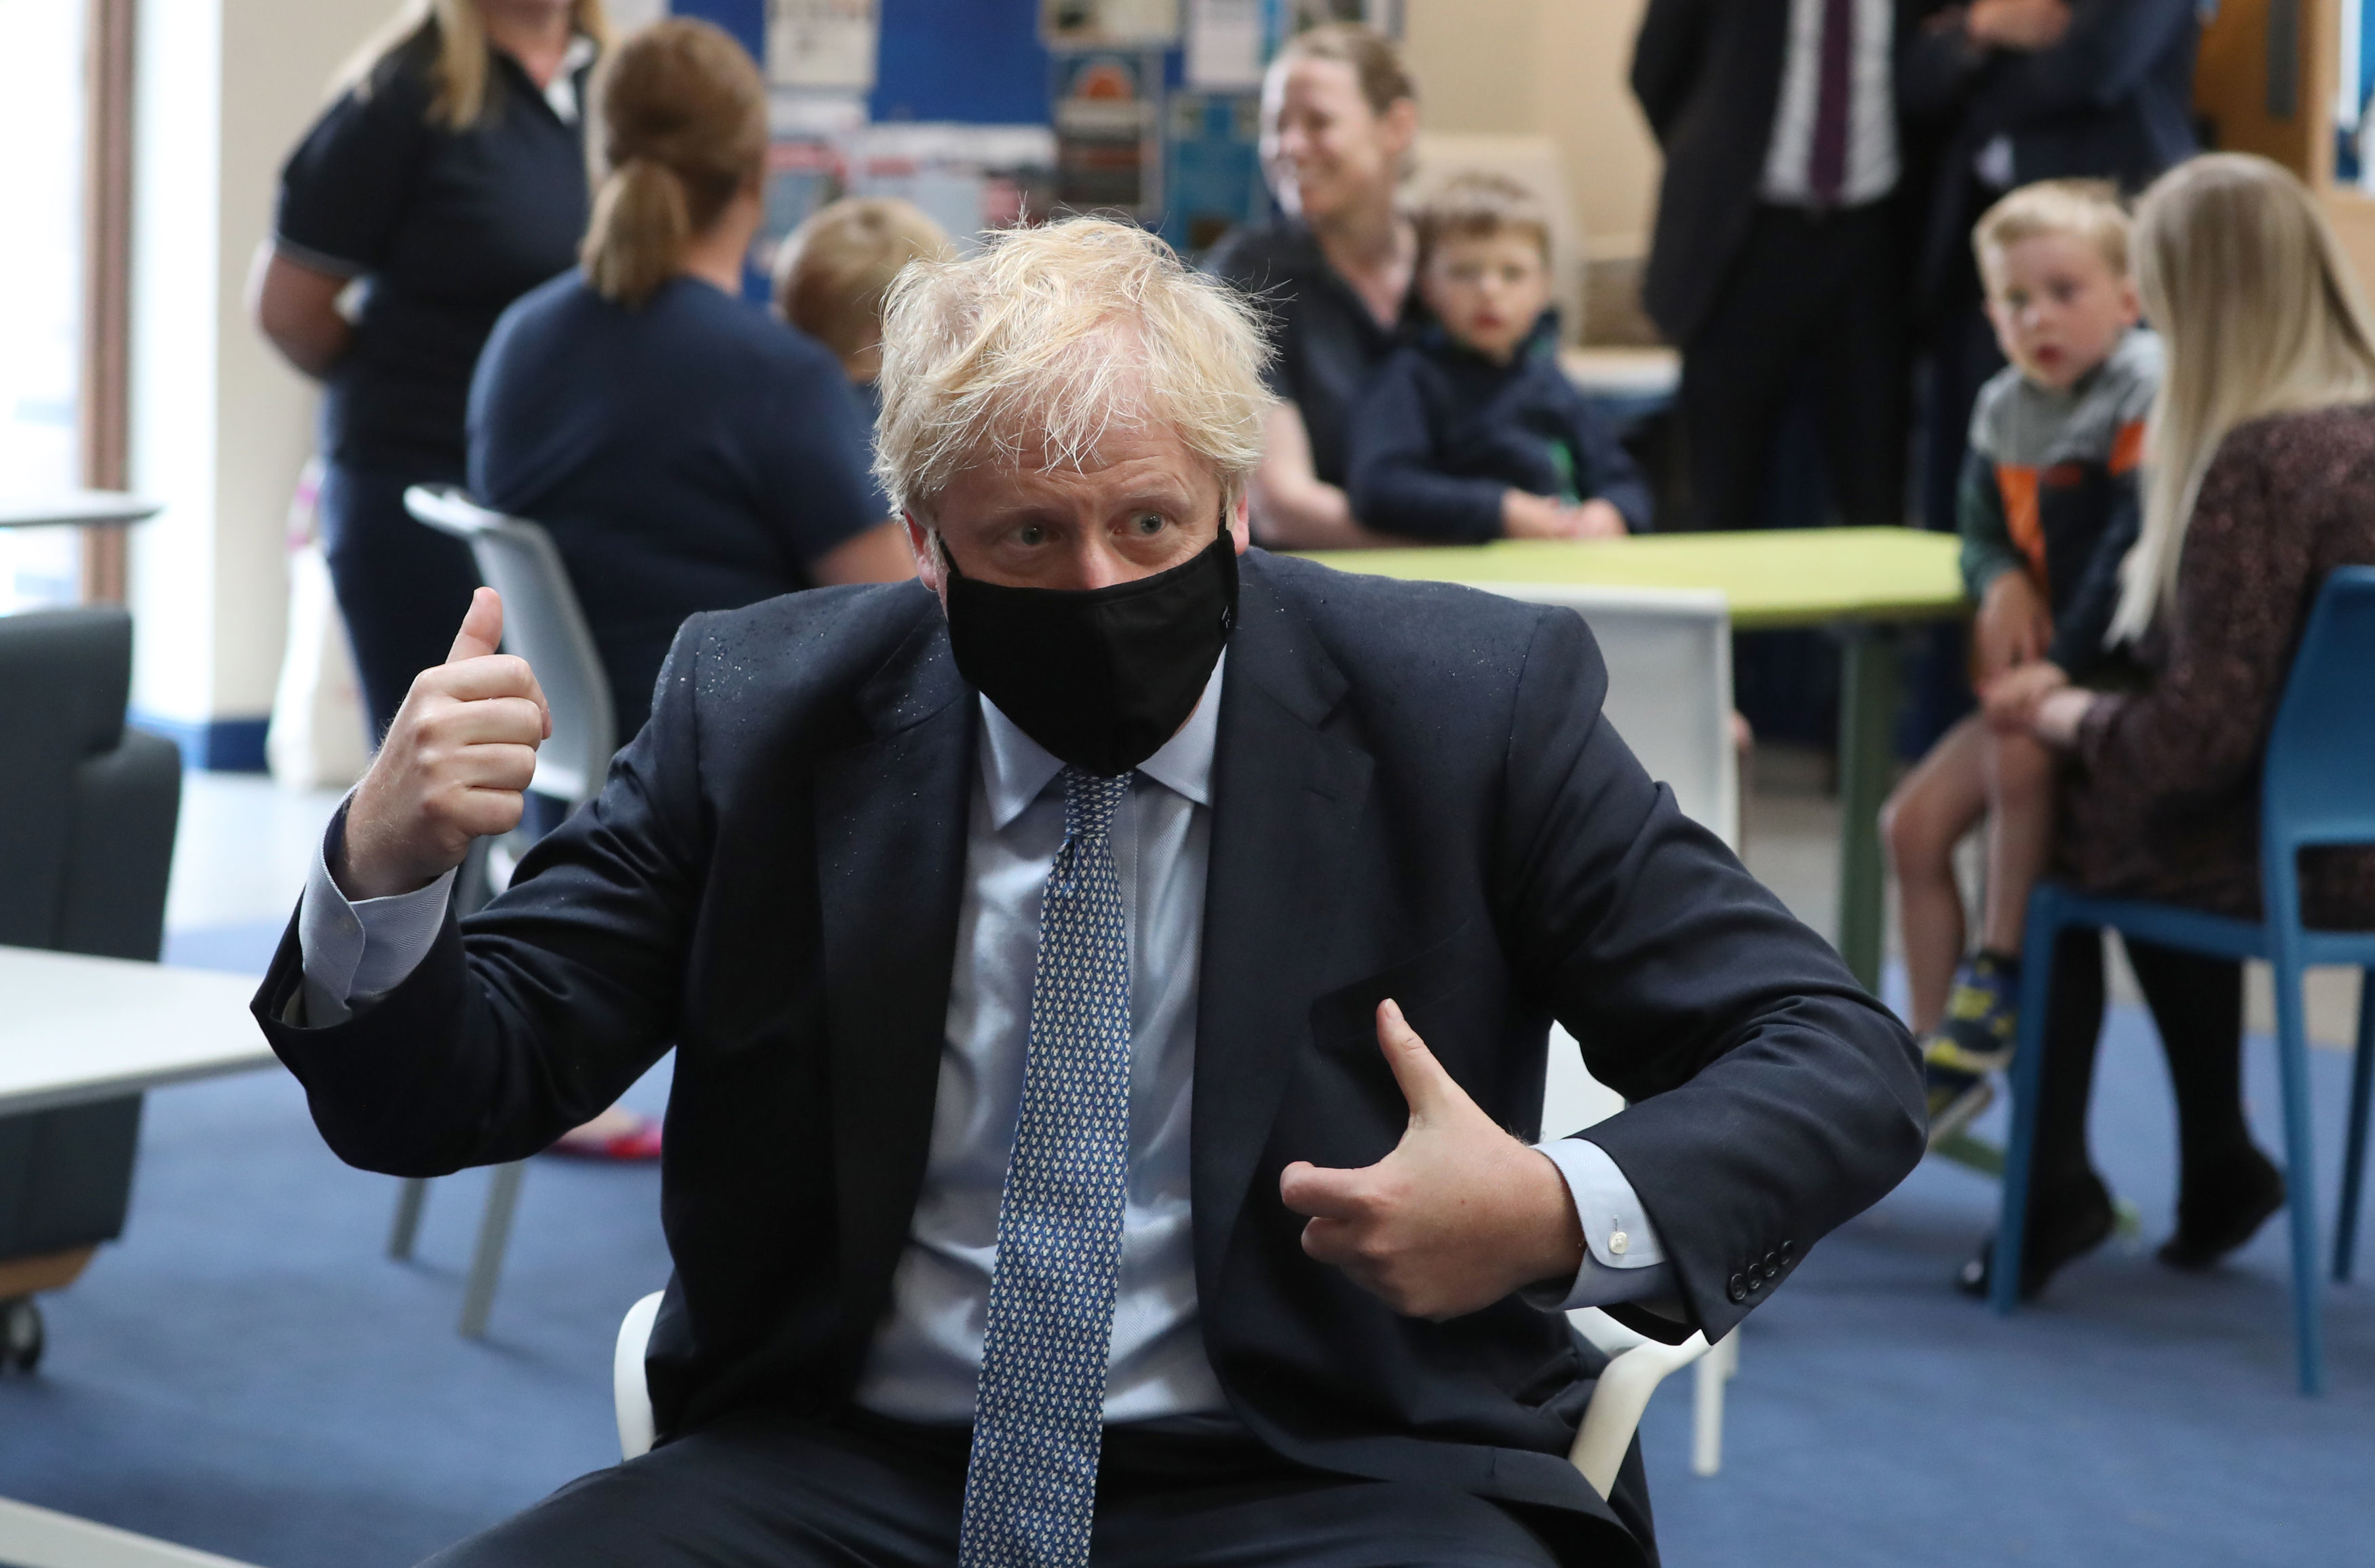 U.K. to restrict junk-food advertising and promotions as COVID-19 has Boris Johnson changing tune on obesity thumbnail